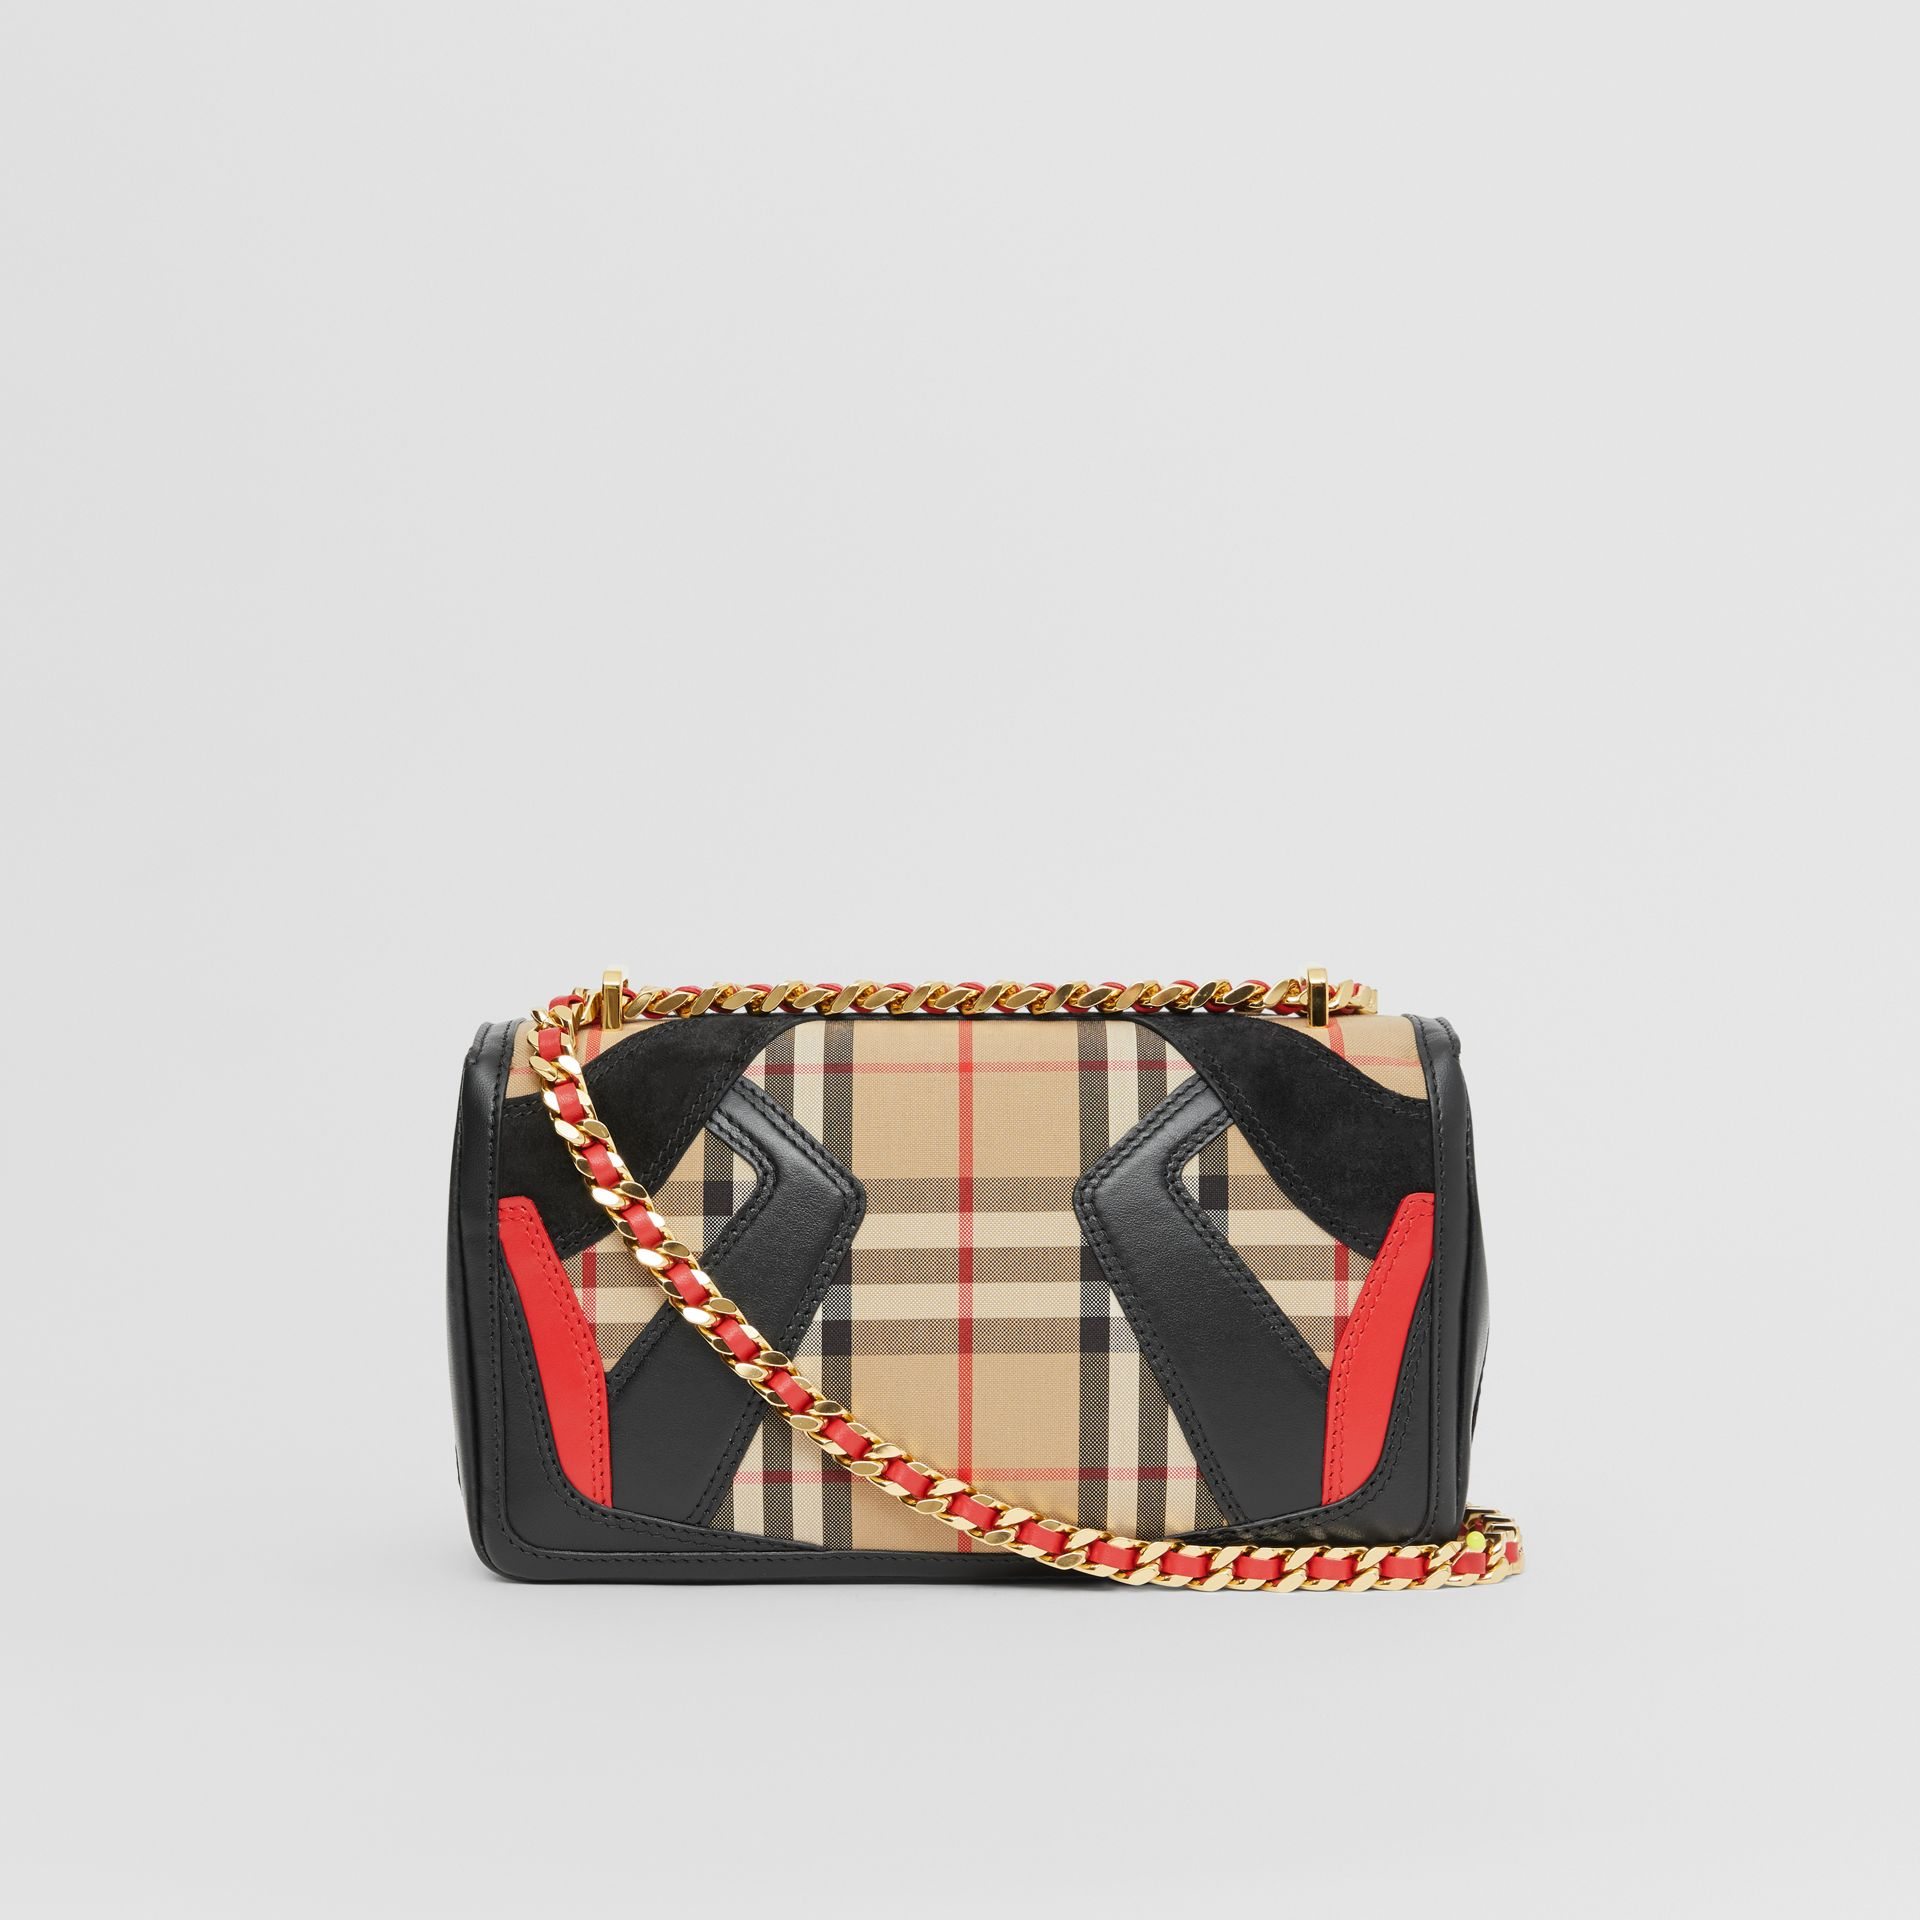 Small Appliqué Vintage Check Lola Bag in Archive Beige - Women | Burberry - gallery image 7